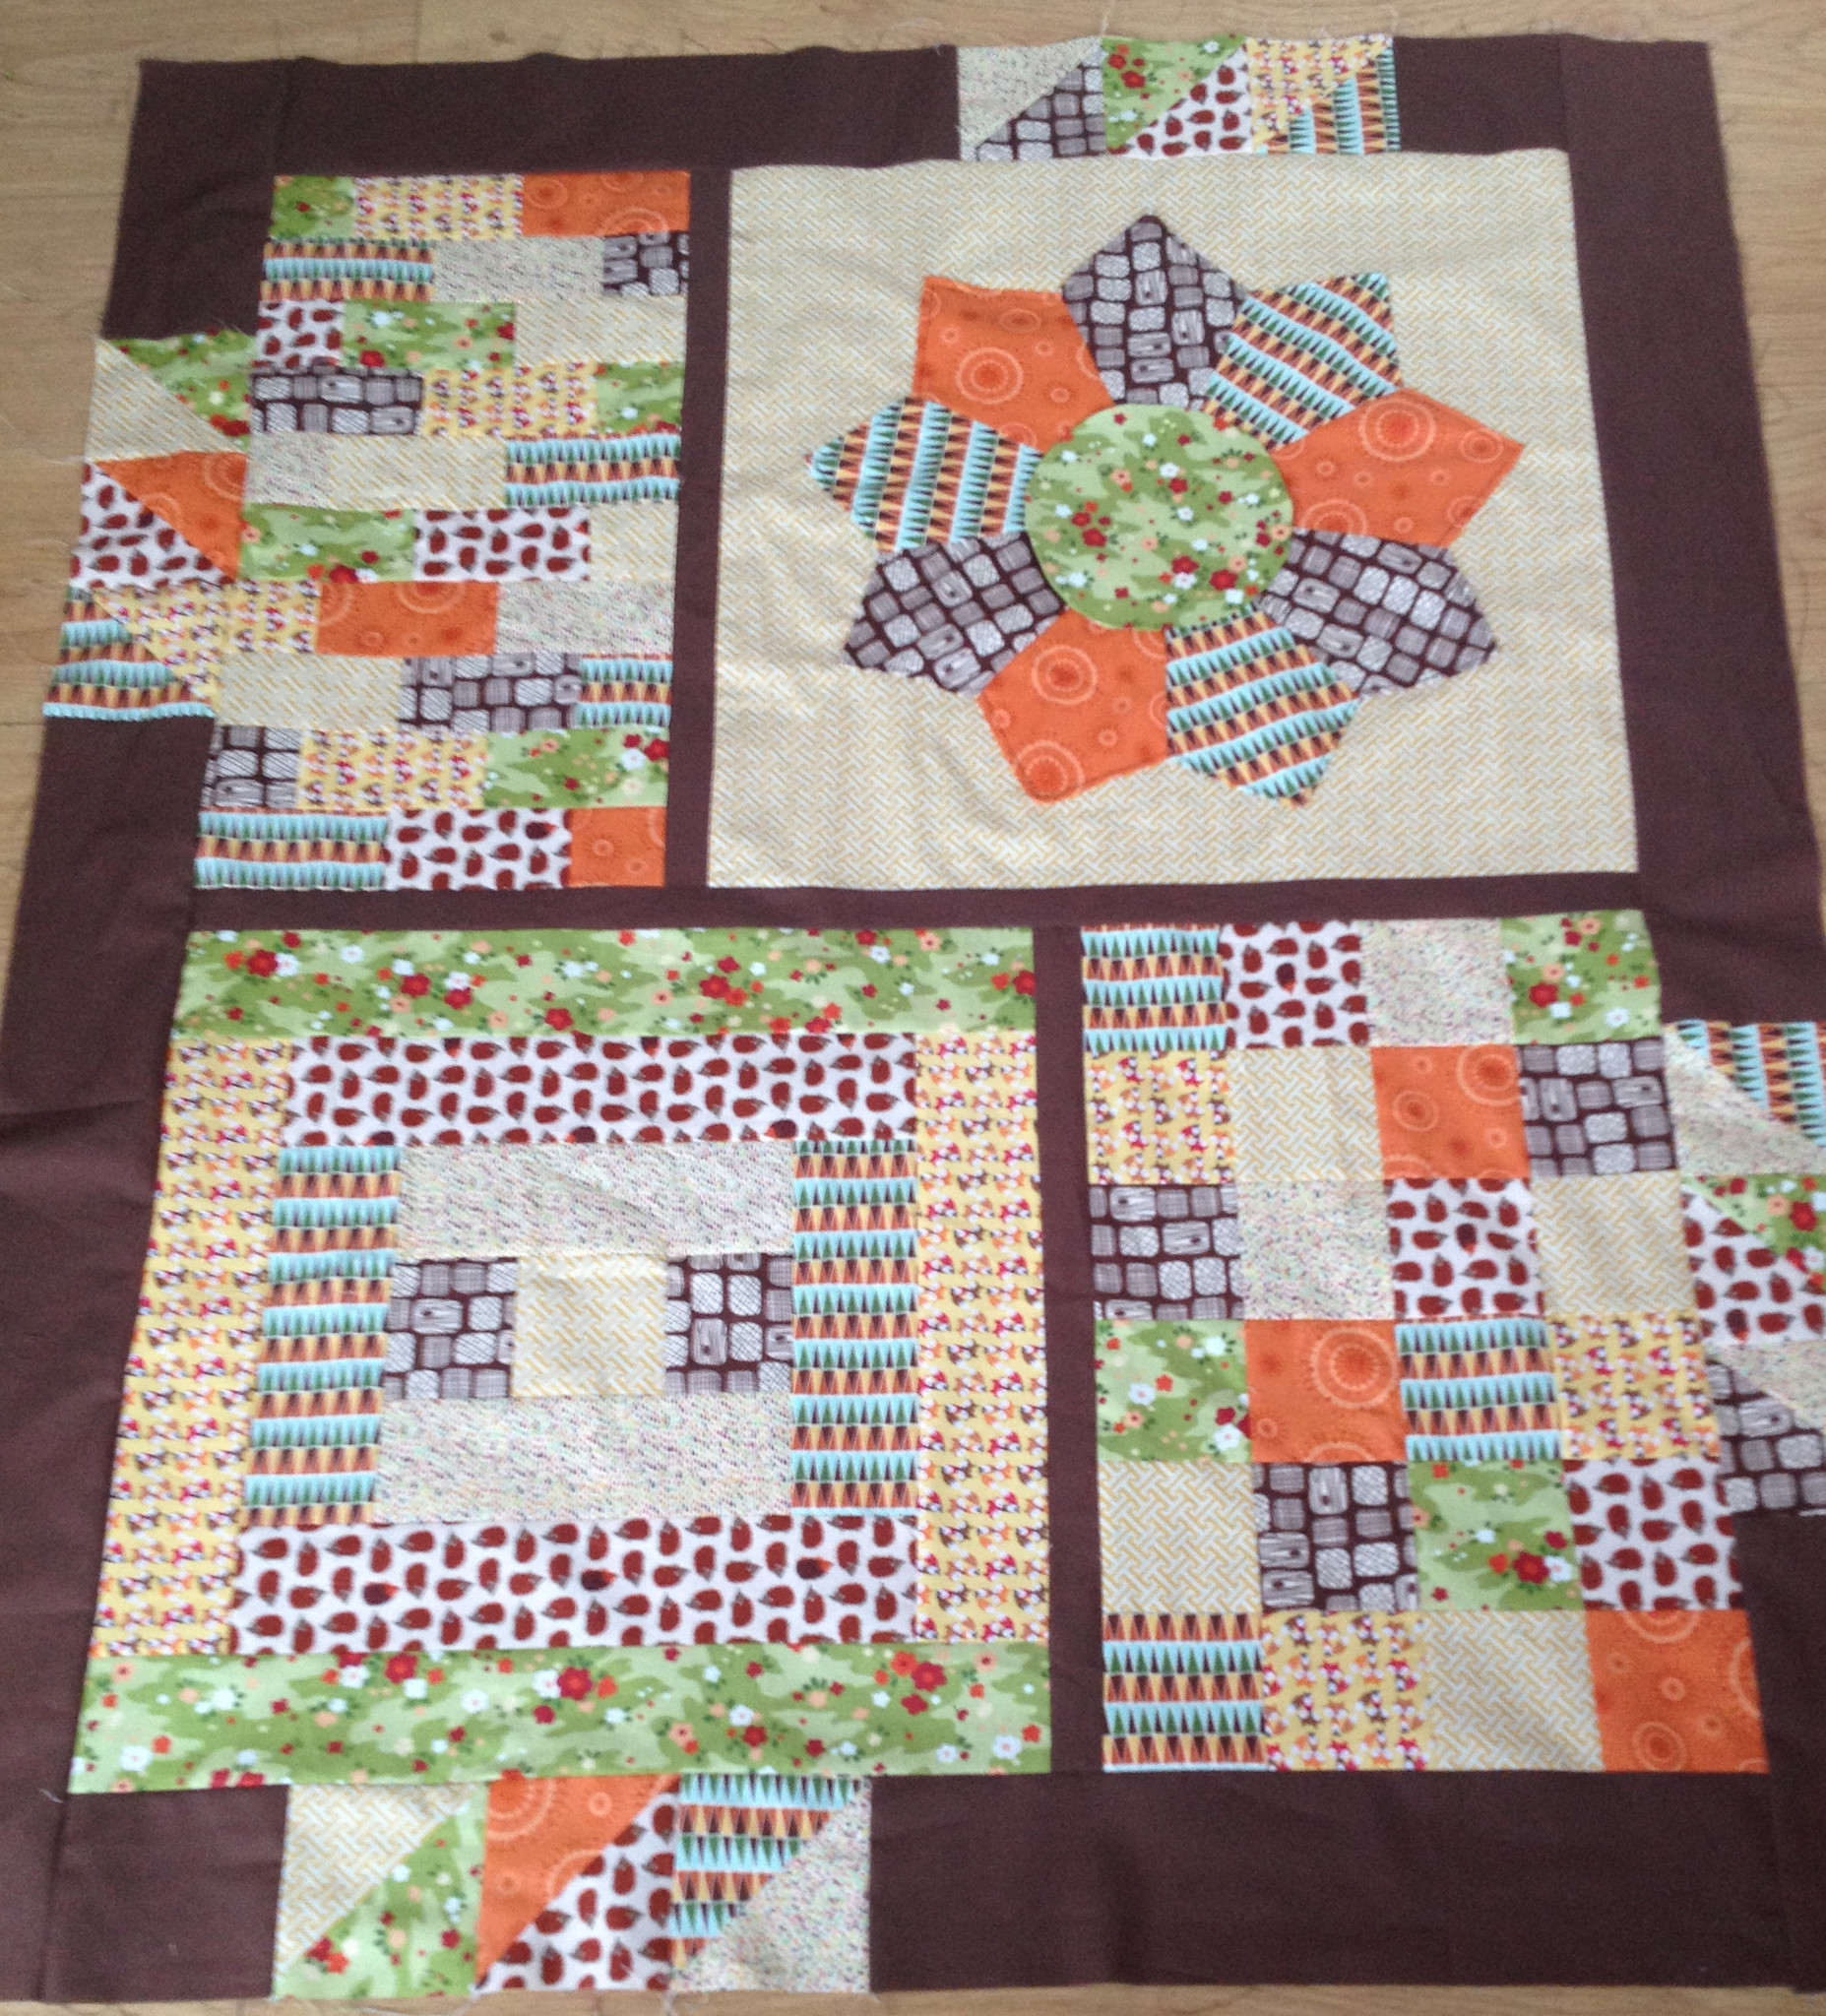 beginner's guide to quilting | MIY Workshop : beginners guide to quilting - Adamdwight.com